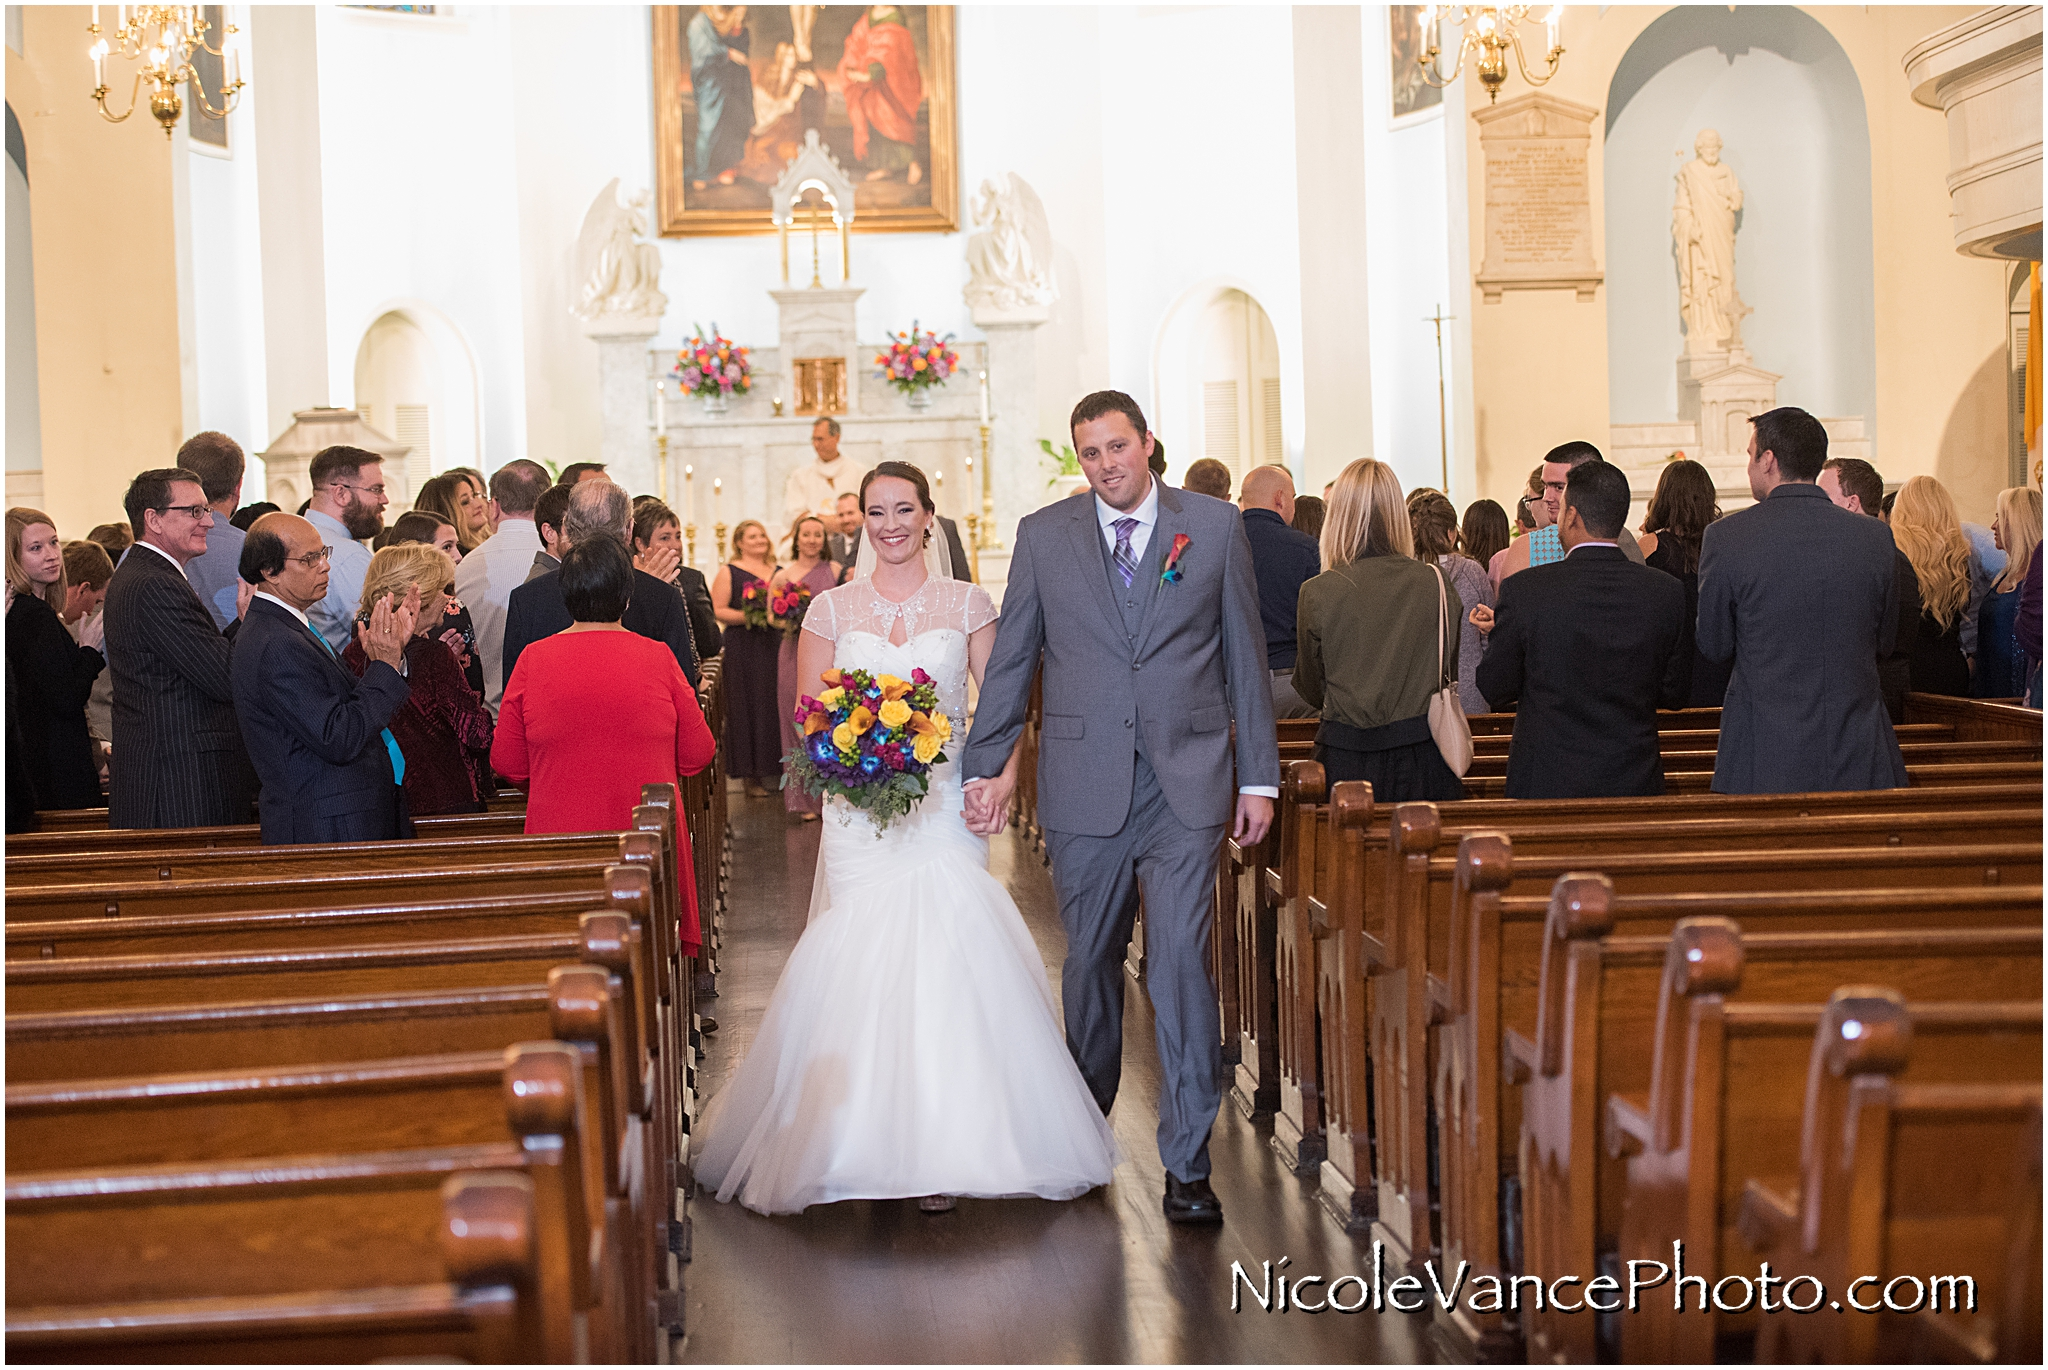 The newlyweds process back down the aisle of St Peter's Church in Richmond VA.